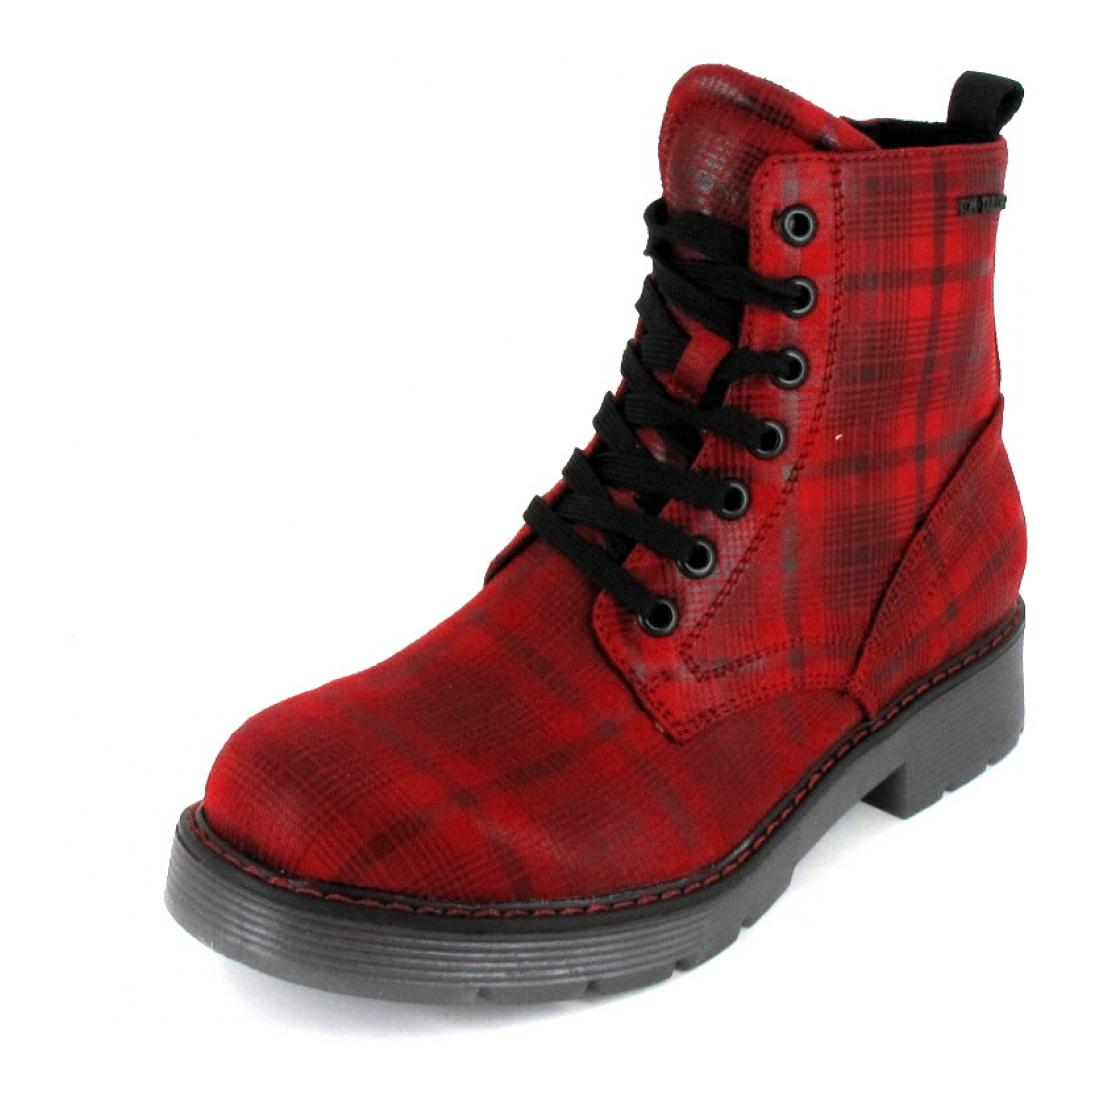 Tom Tailor Boots red